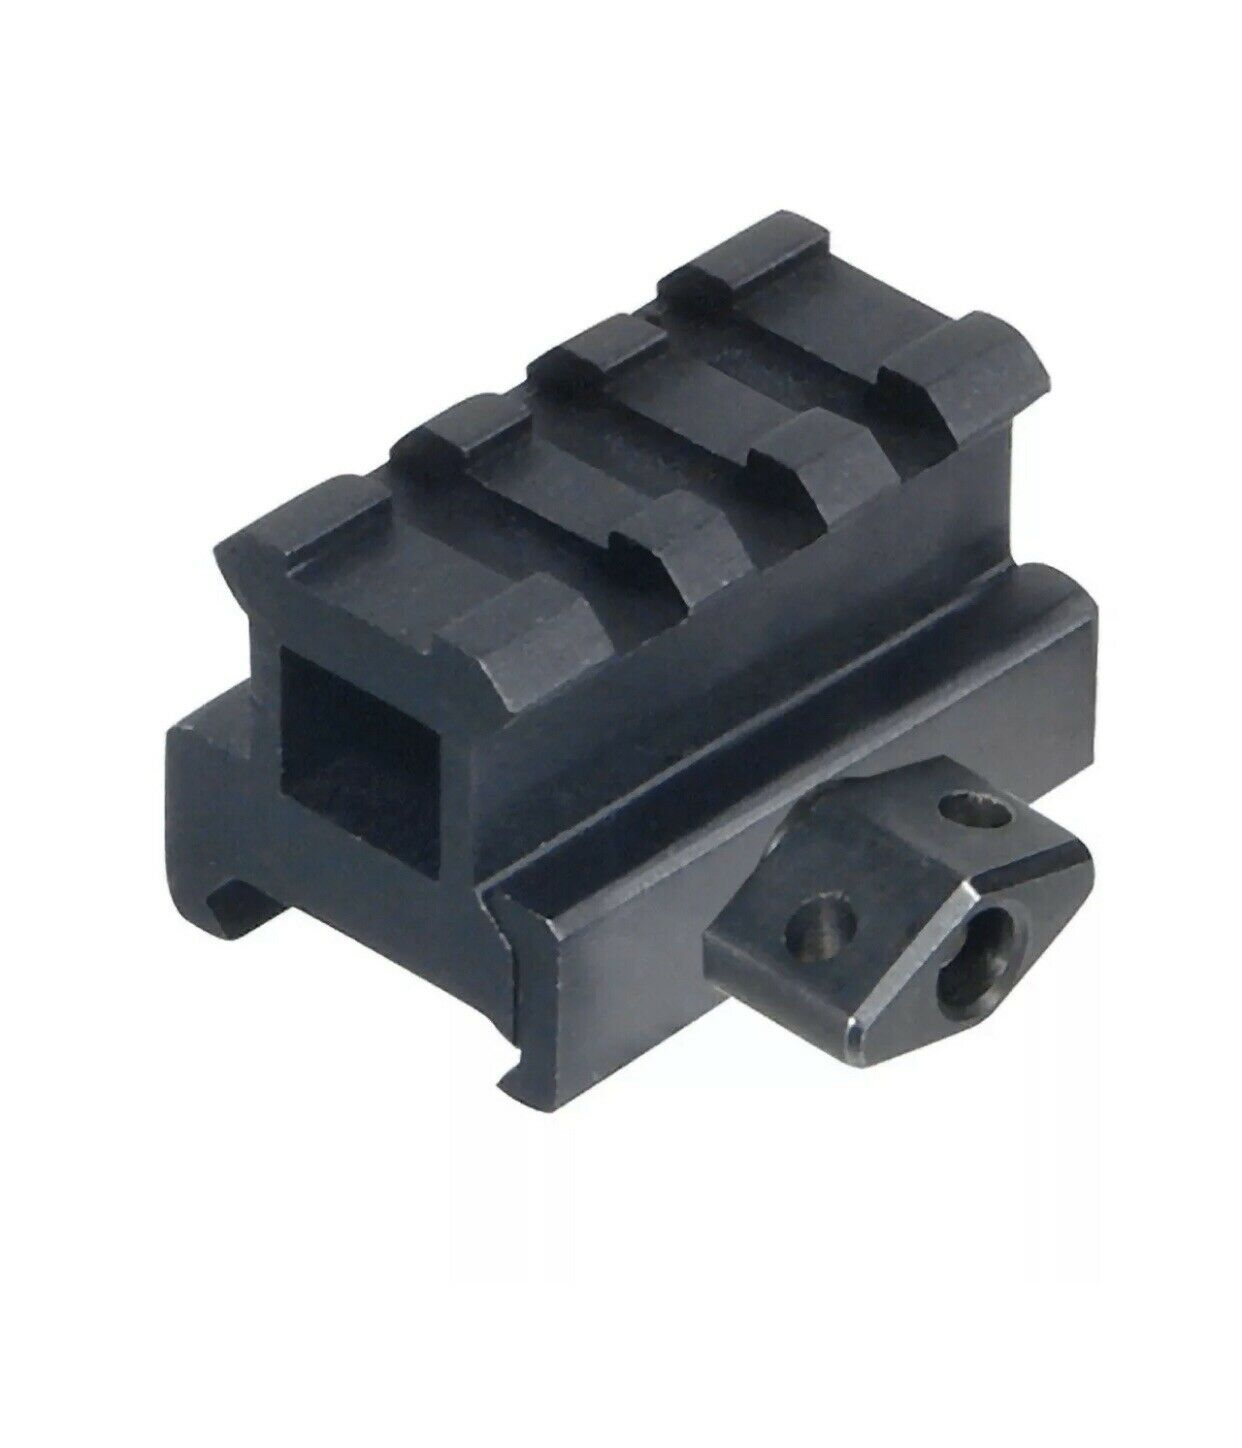 NEW UTG Med-pro Compact Riser Mount 0.83 High 3 Slots MNTRS08S3